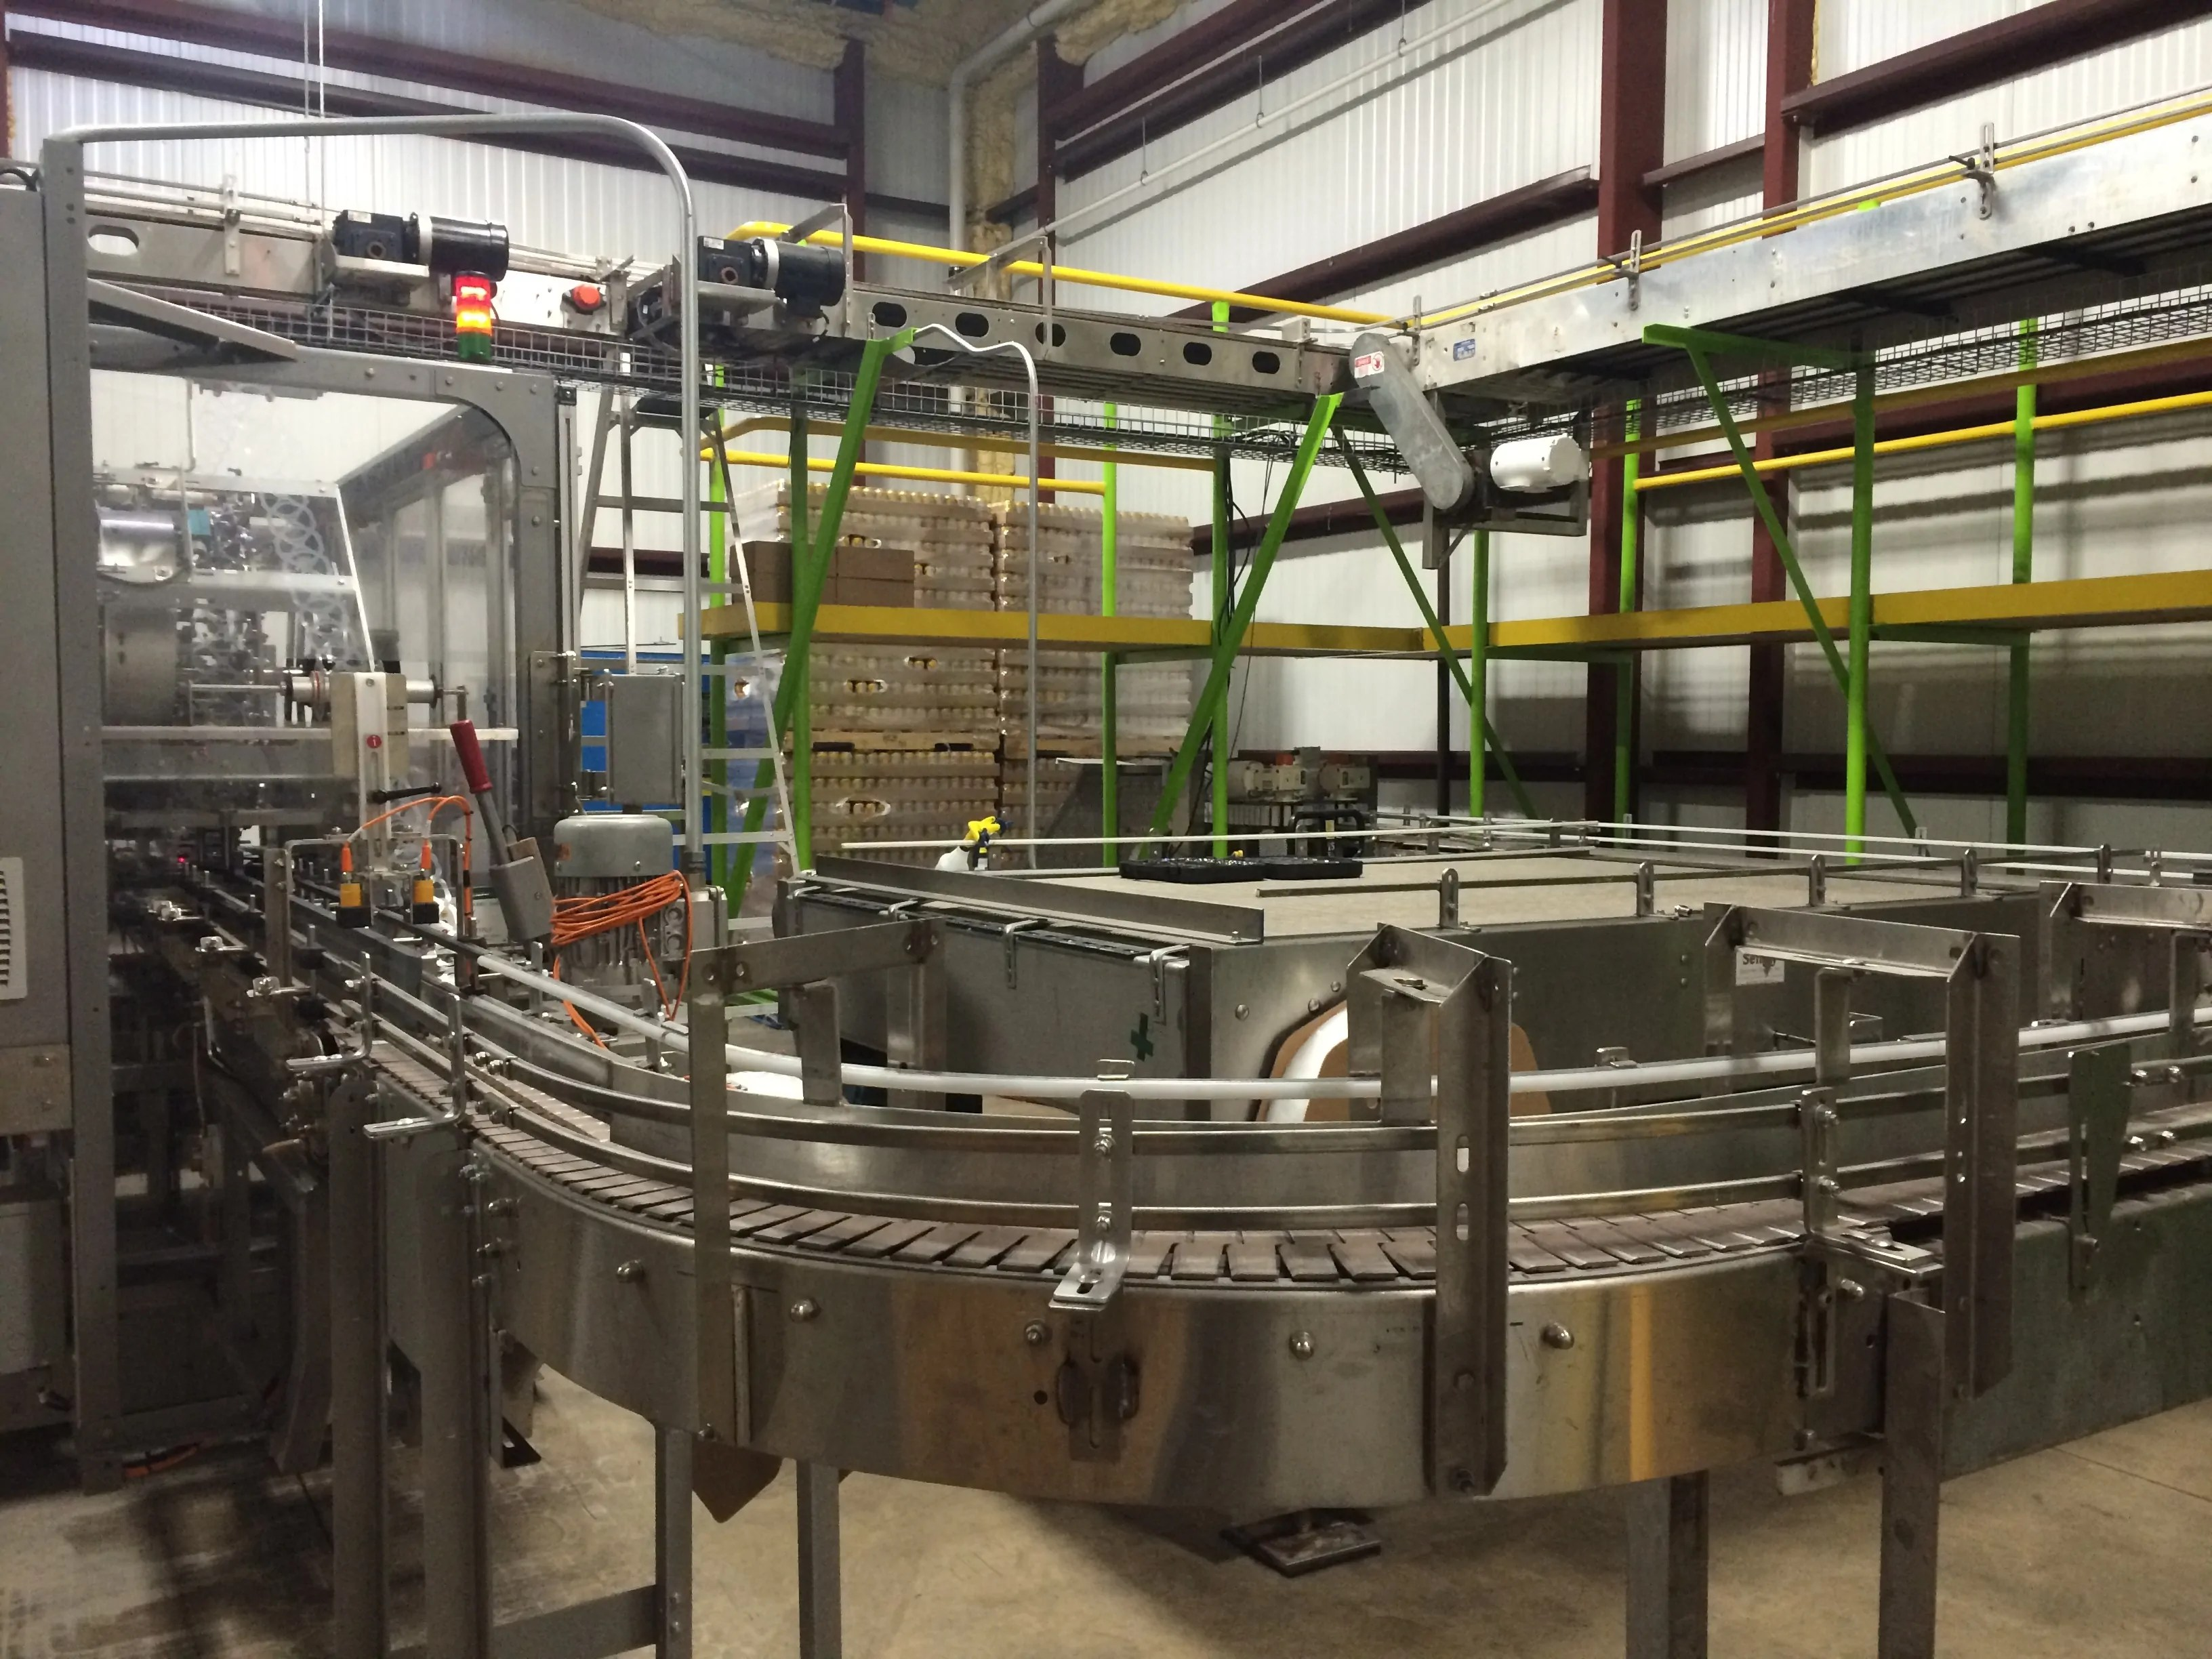 Ska's new canning line